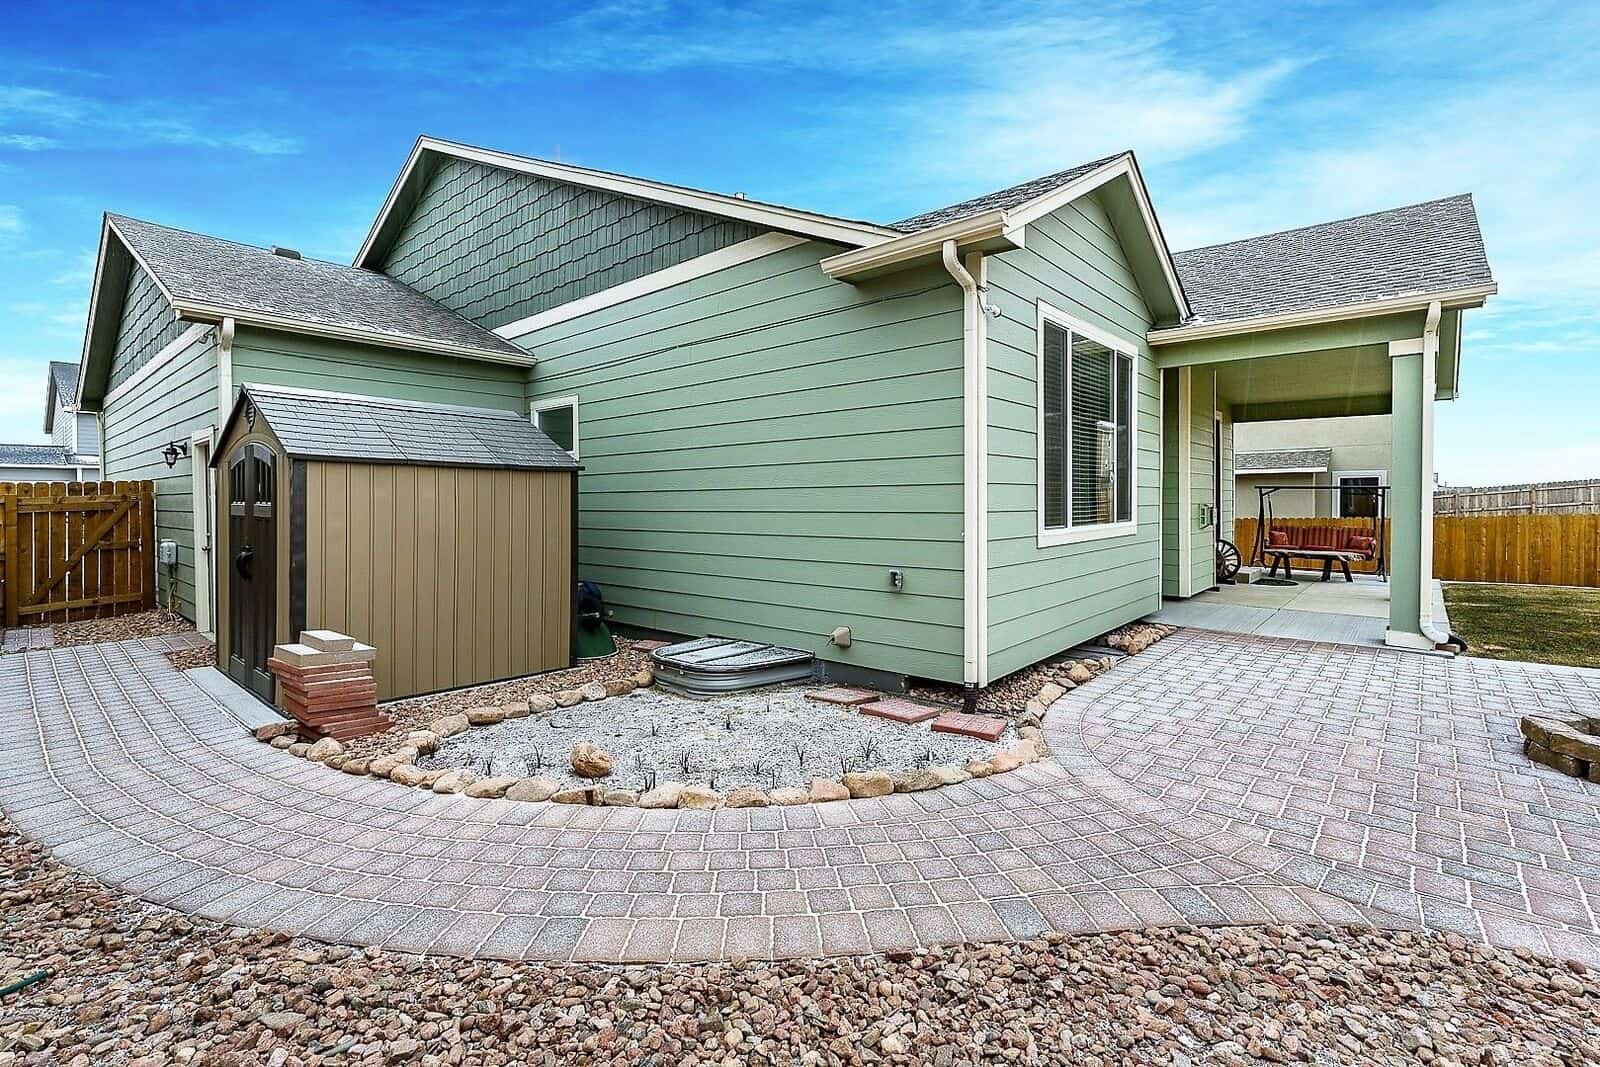 Side Yard with Storage Shed